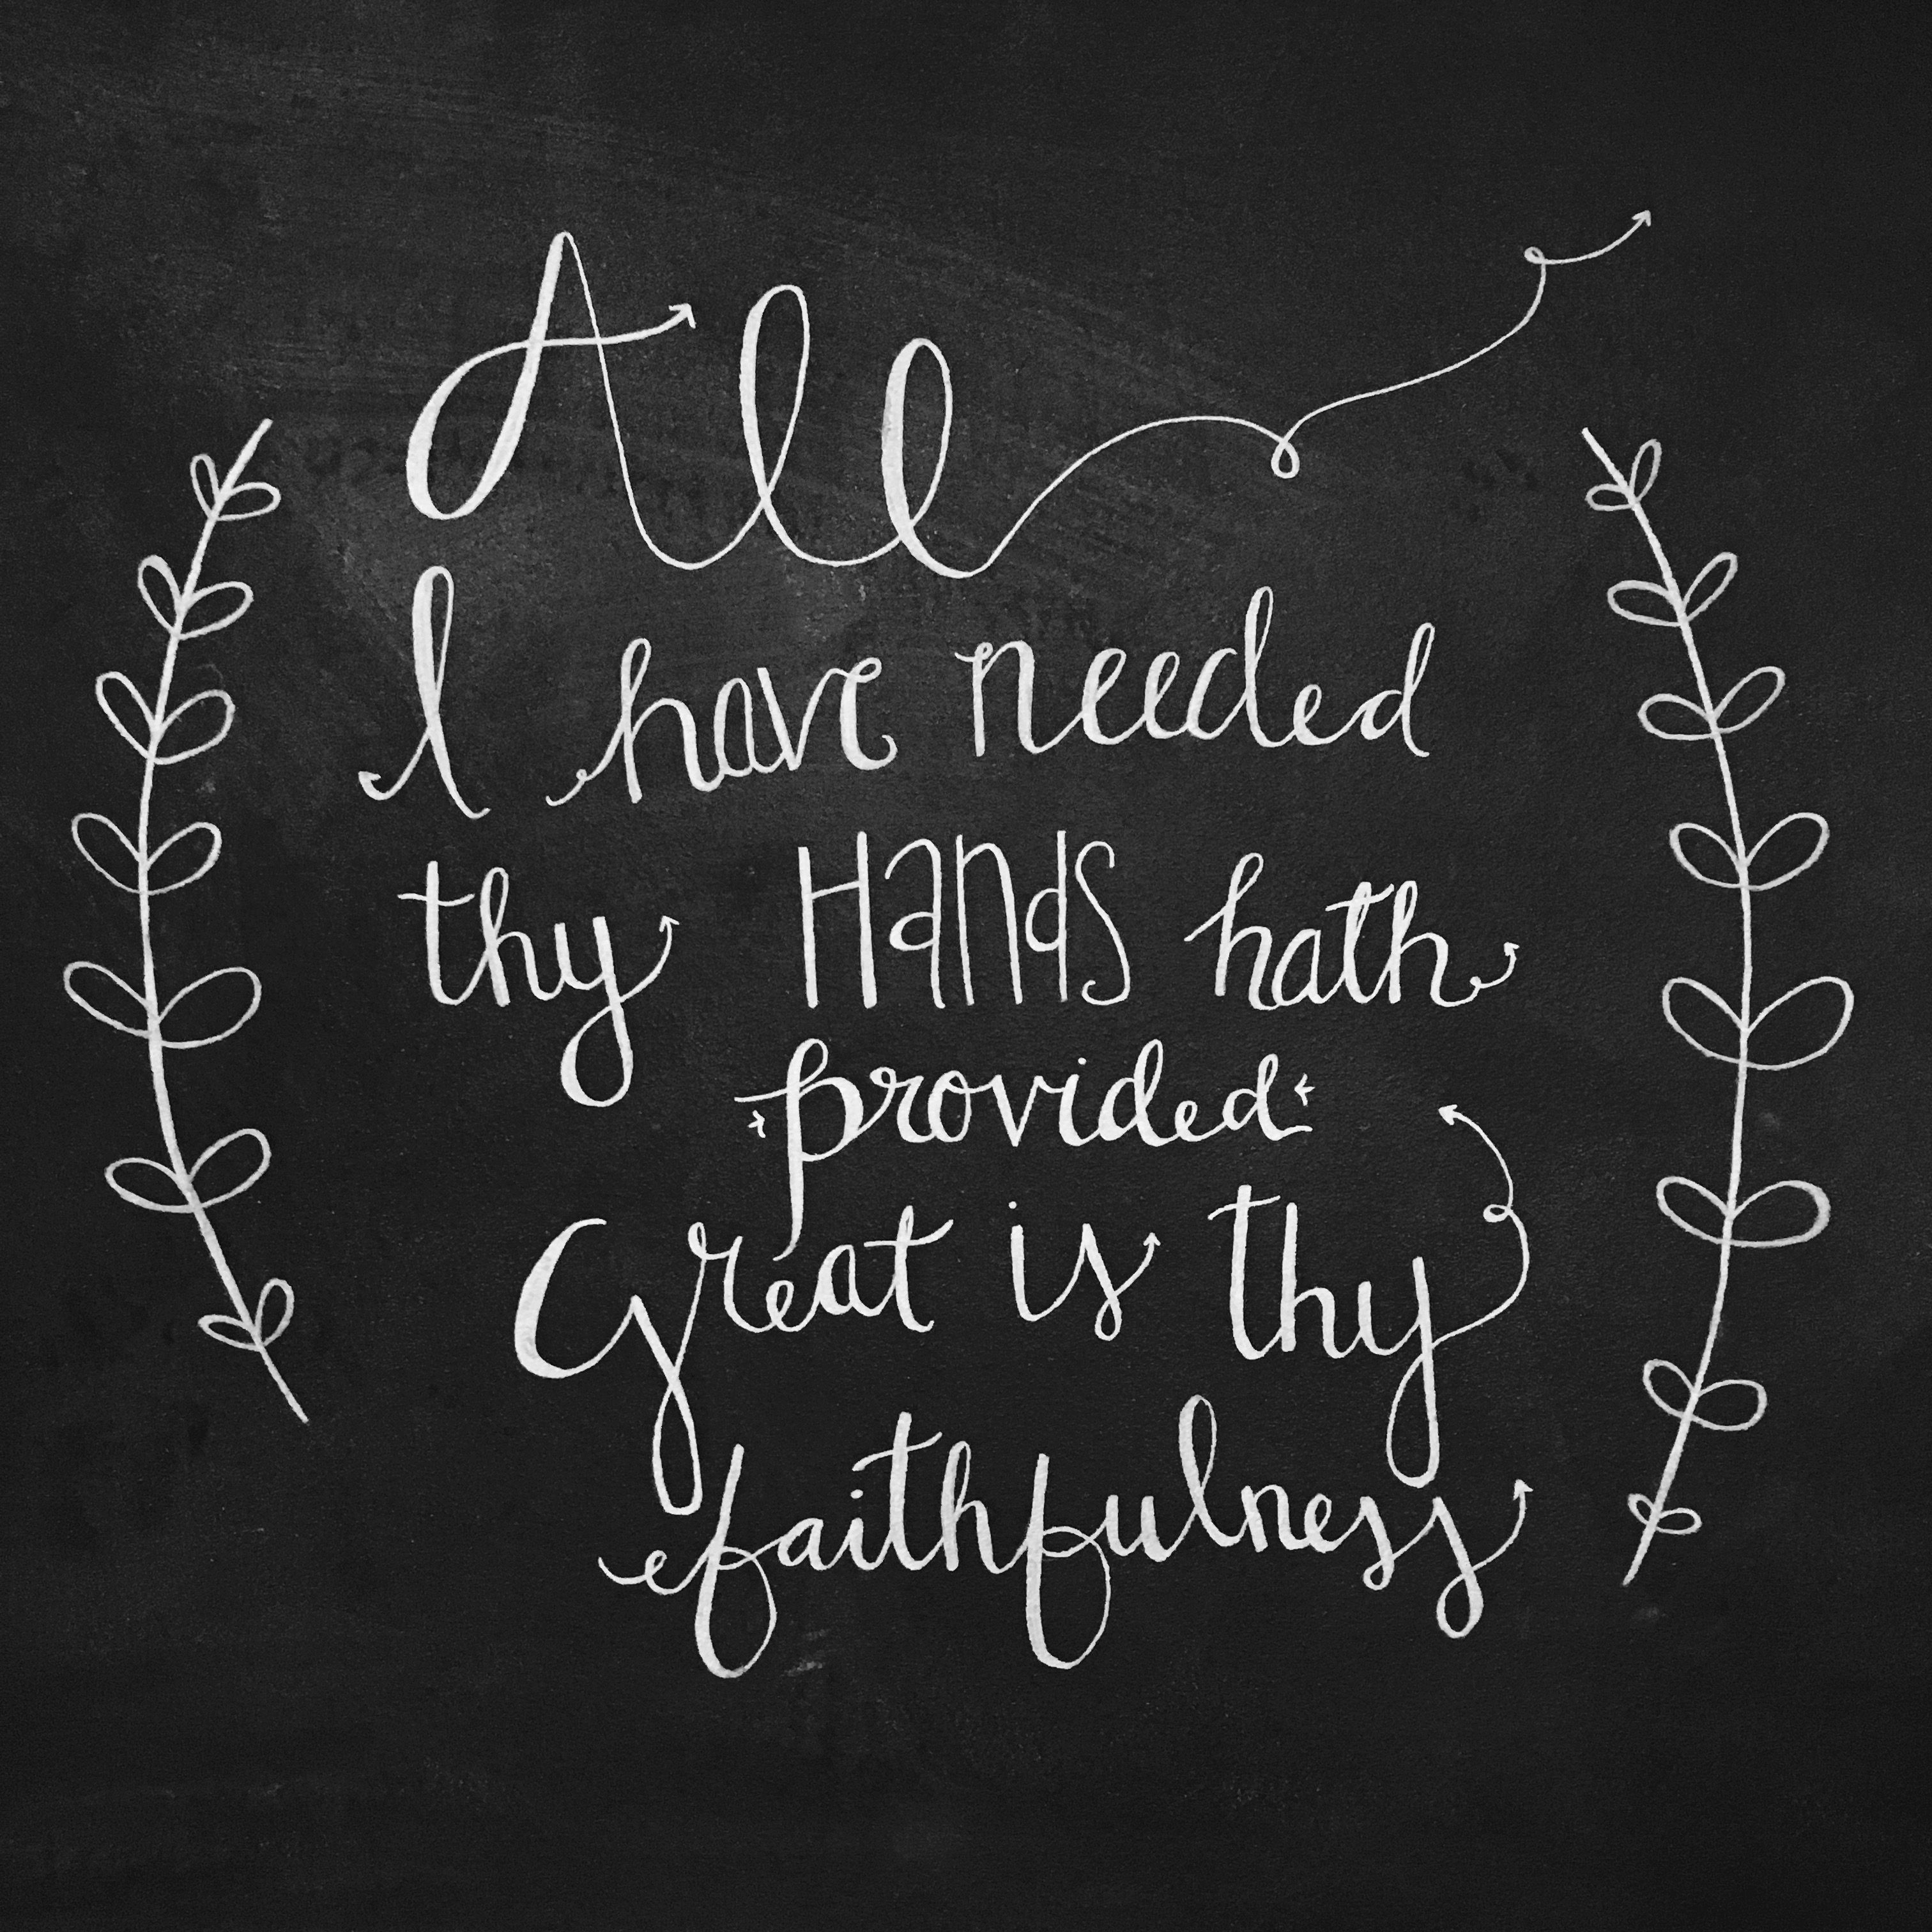 All I Have Needed Thy Hands Hath Provided Great Is Thy Faithfulness Wall Chalkboard Chalk Art Vines Script Cur Chalkboard Art Chalkboard Chalk Daily Devotional